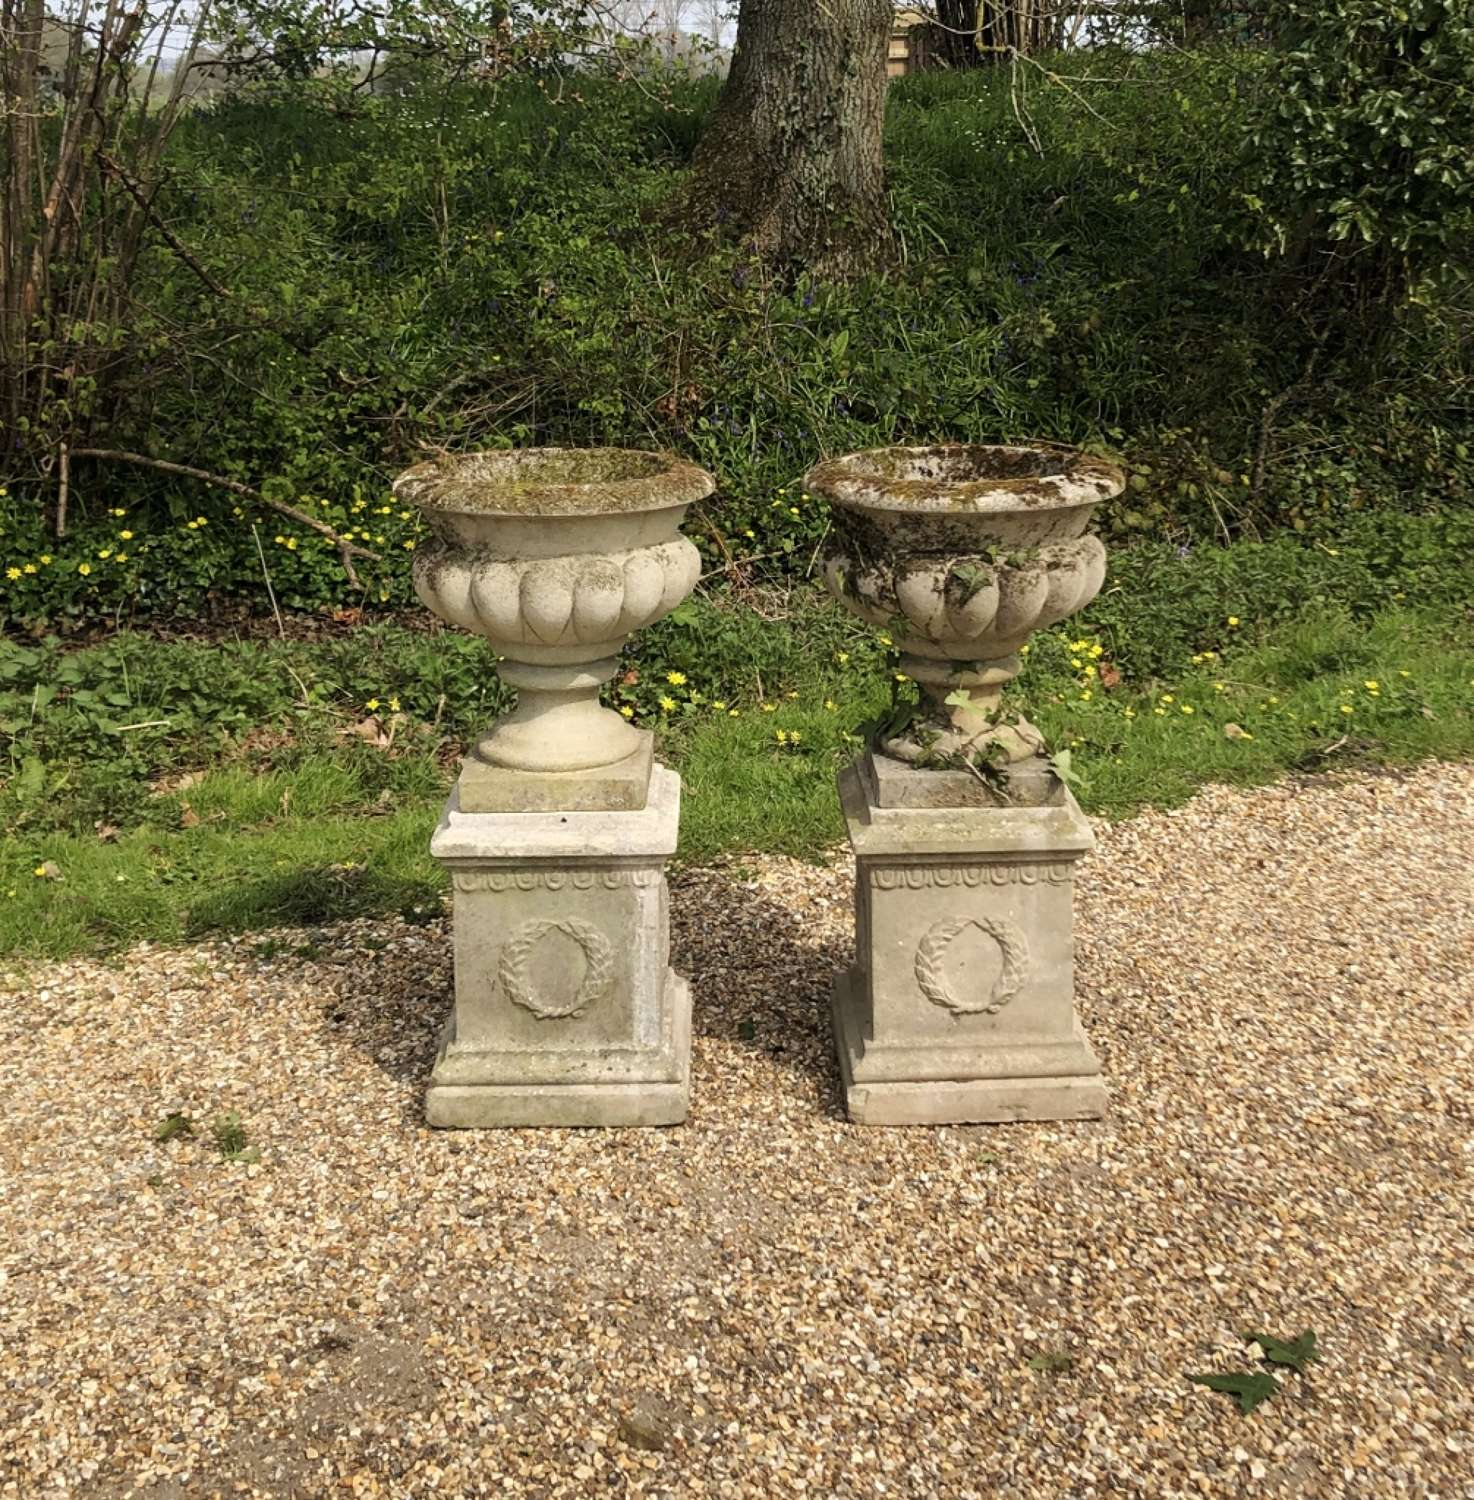 Pair of Small Vintage Urns and Pedestals